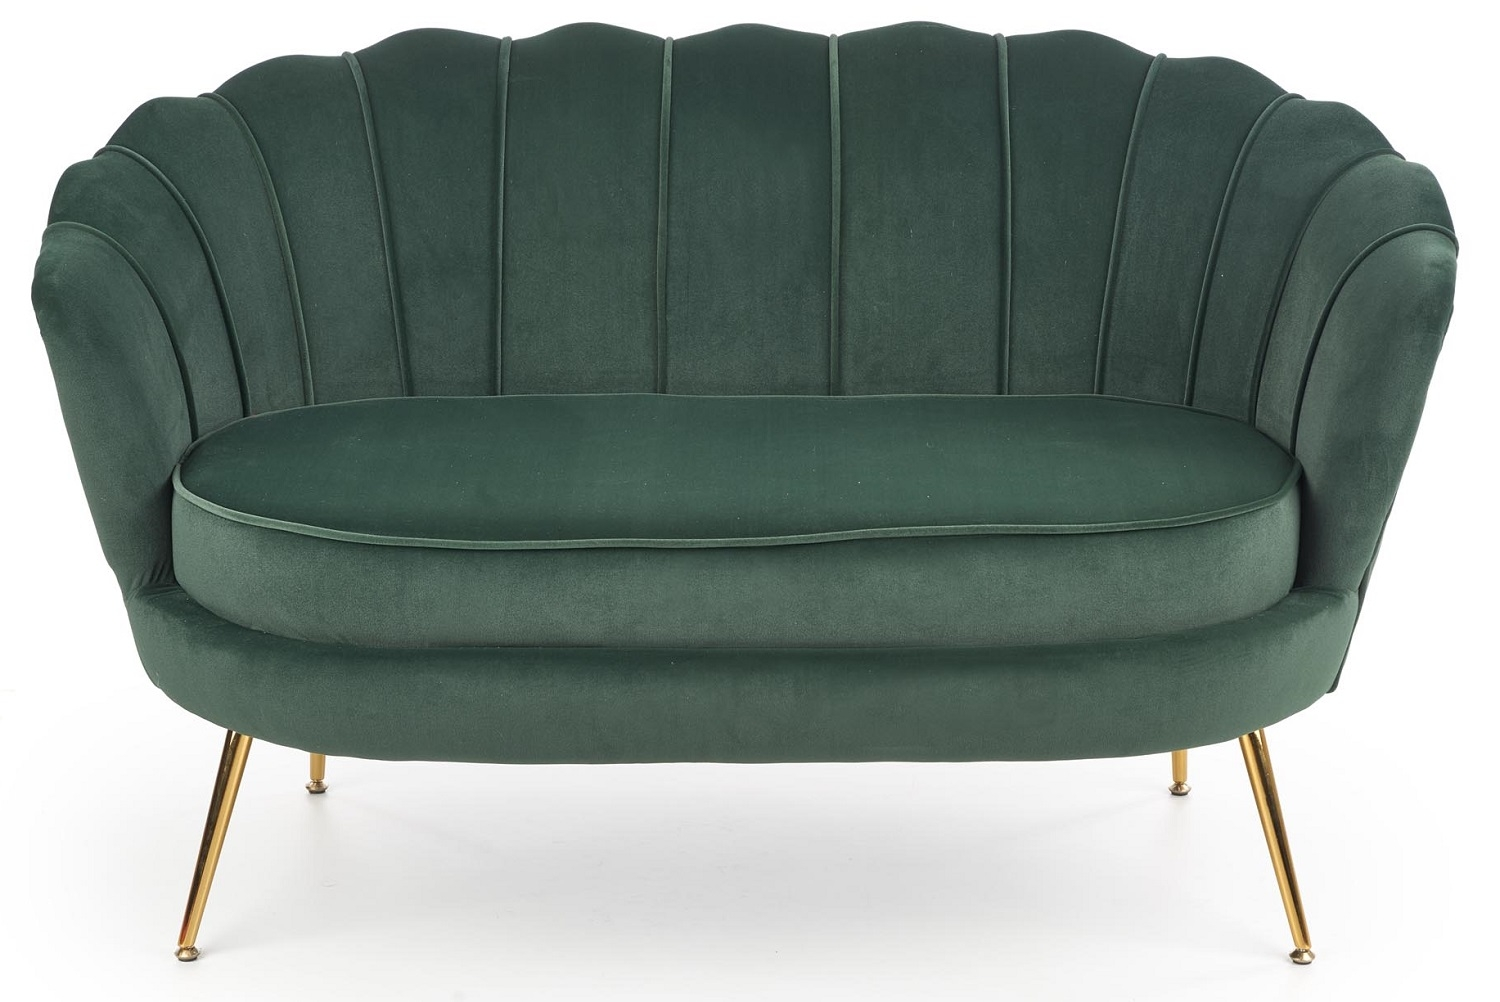 Fauteuil Amorinito 133 breed in groen | Home Style